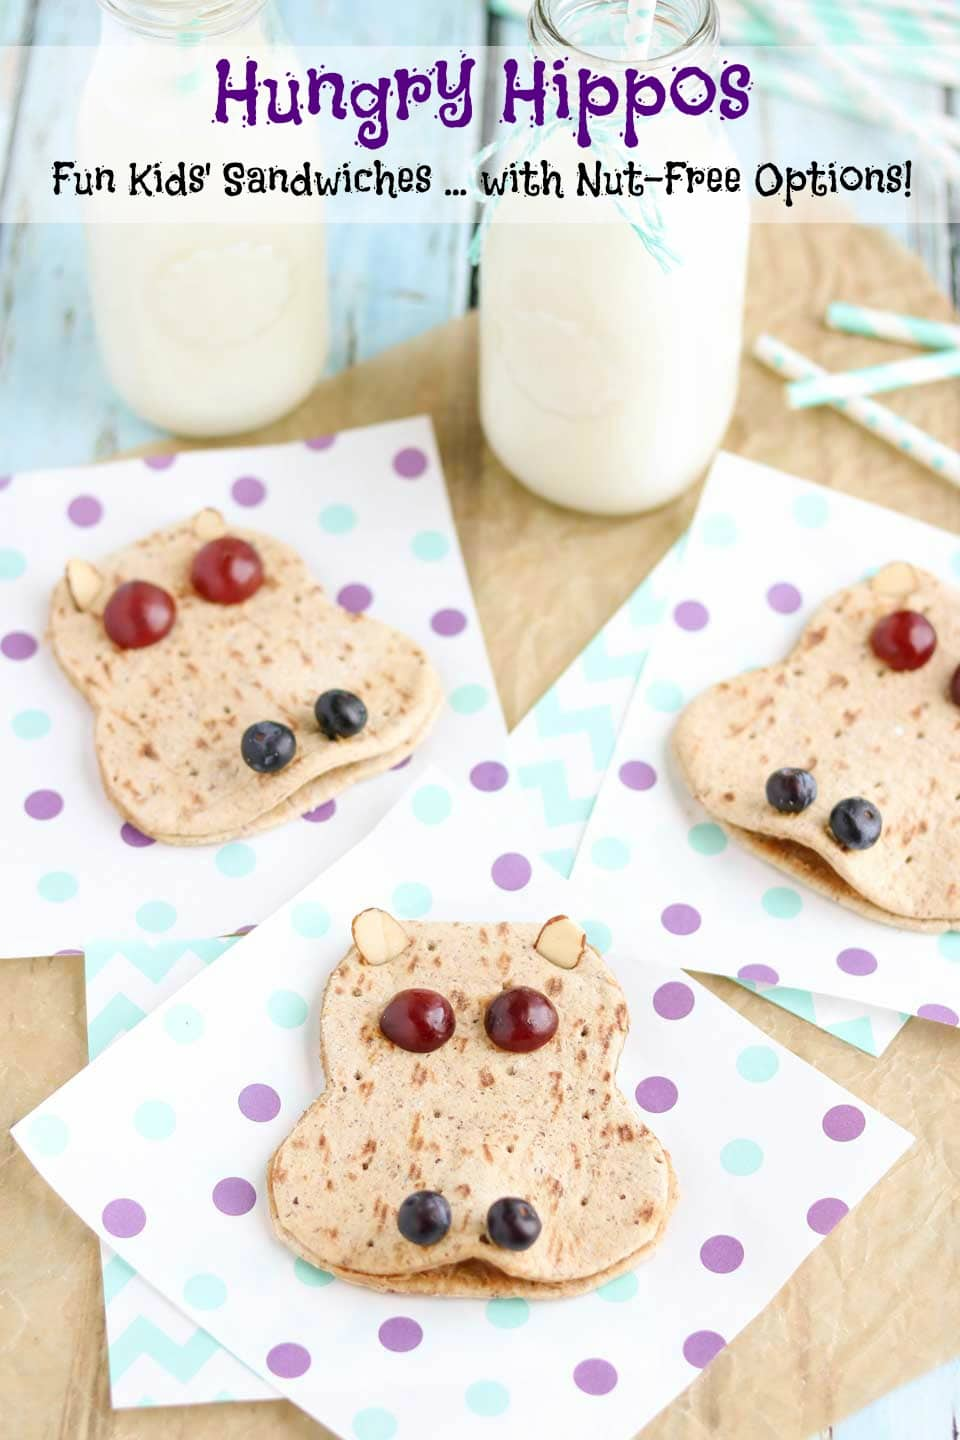 Kids will love this adorable sandwich recipe! Use it as a fun edible art project ... or as a special little lunch box surprise! Choose basic peanut butter and jelly, or one of our other creative filling ideas (even lots of nut-free options for school lunches)! AD | www.TwoHealthyKitchens.com